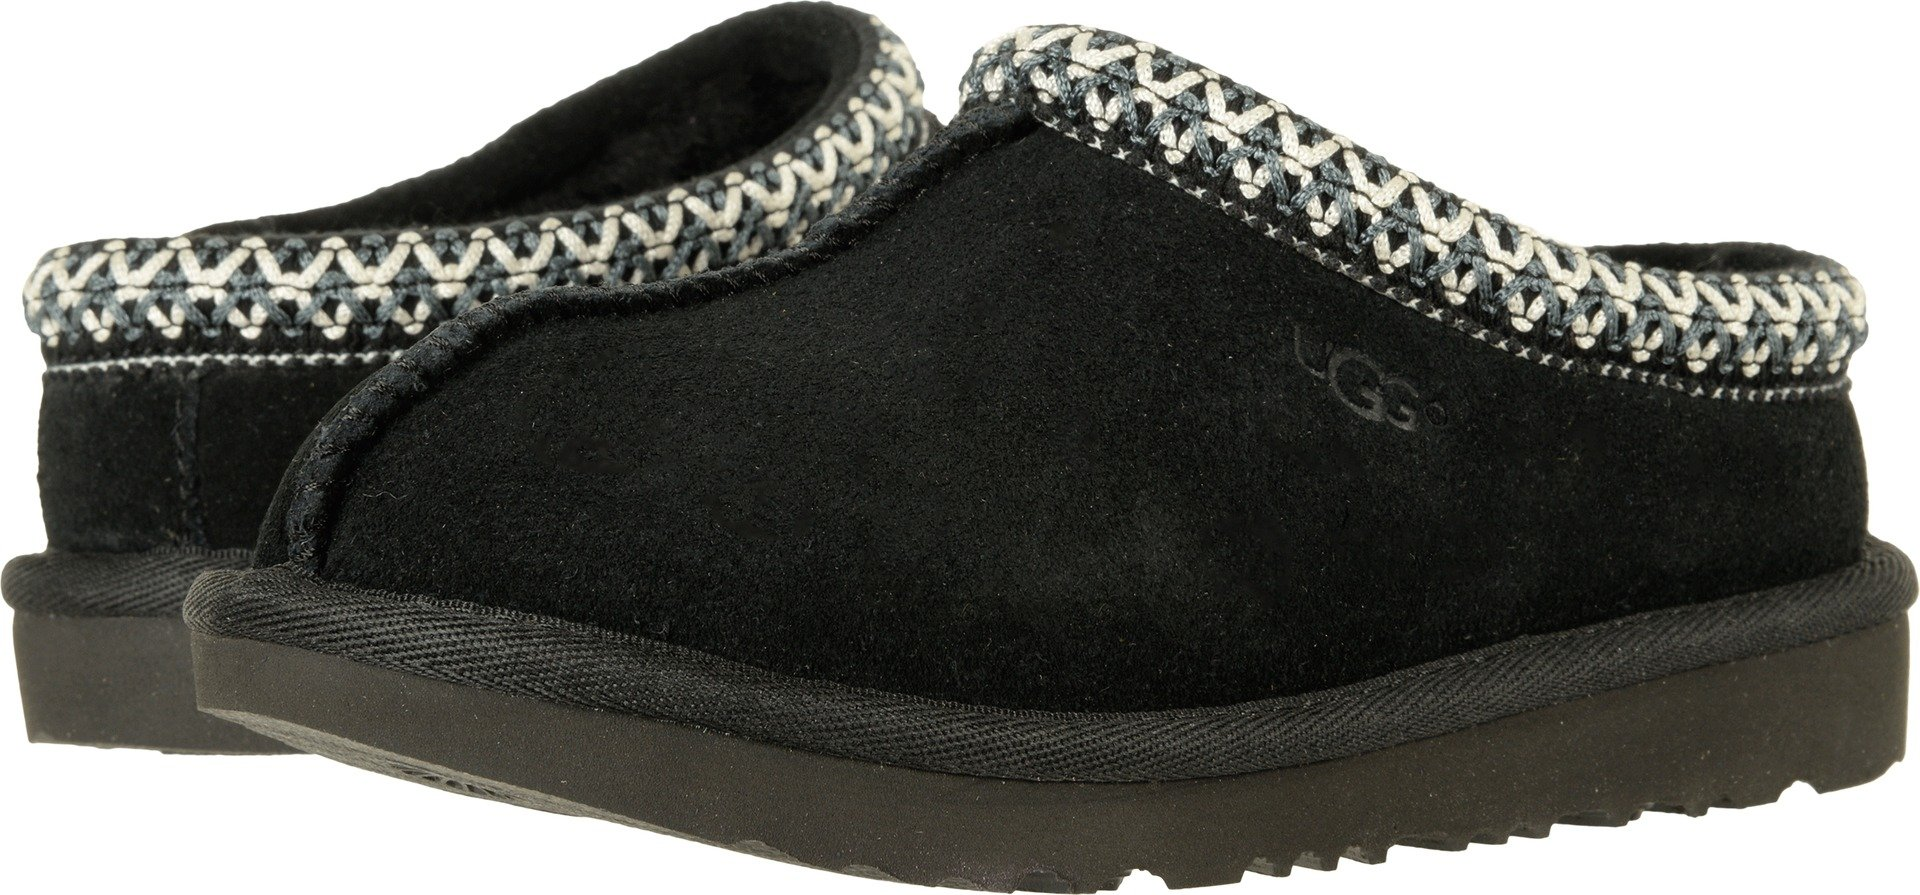 UGG Kids K Tasman II Moccasin,Black,6 M US Big Kid